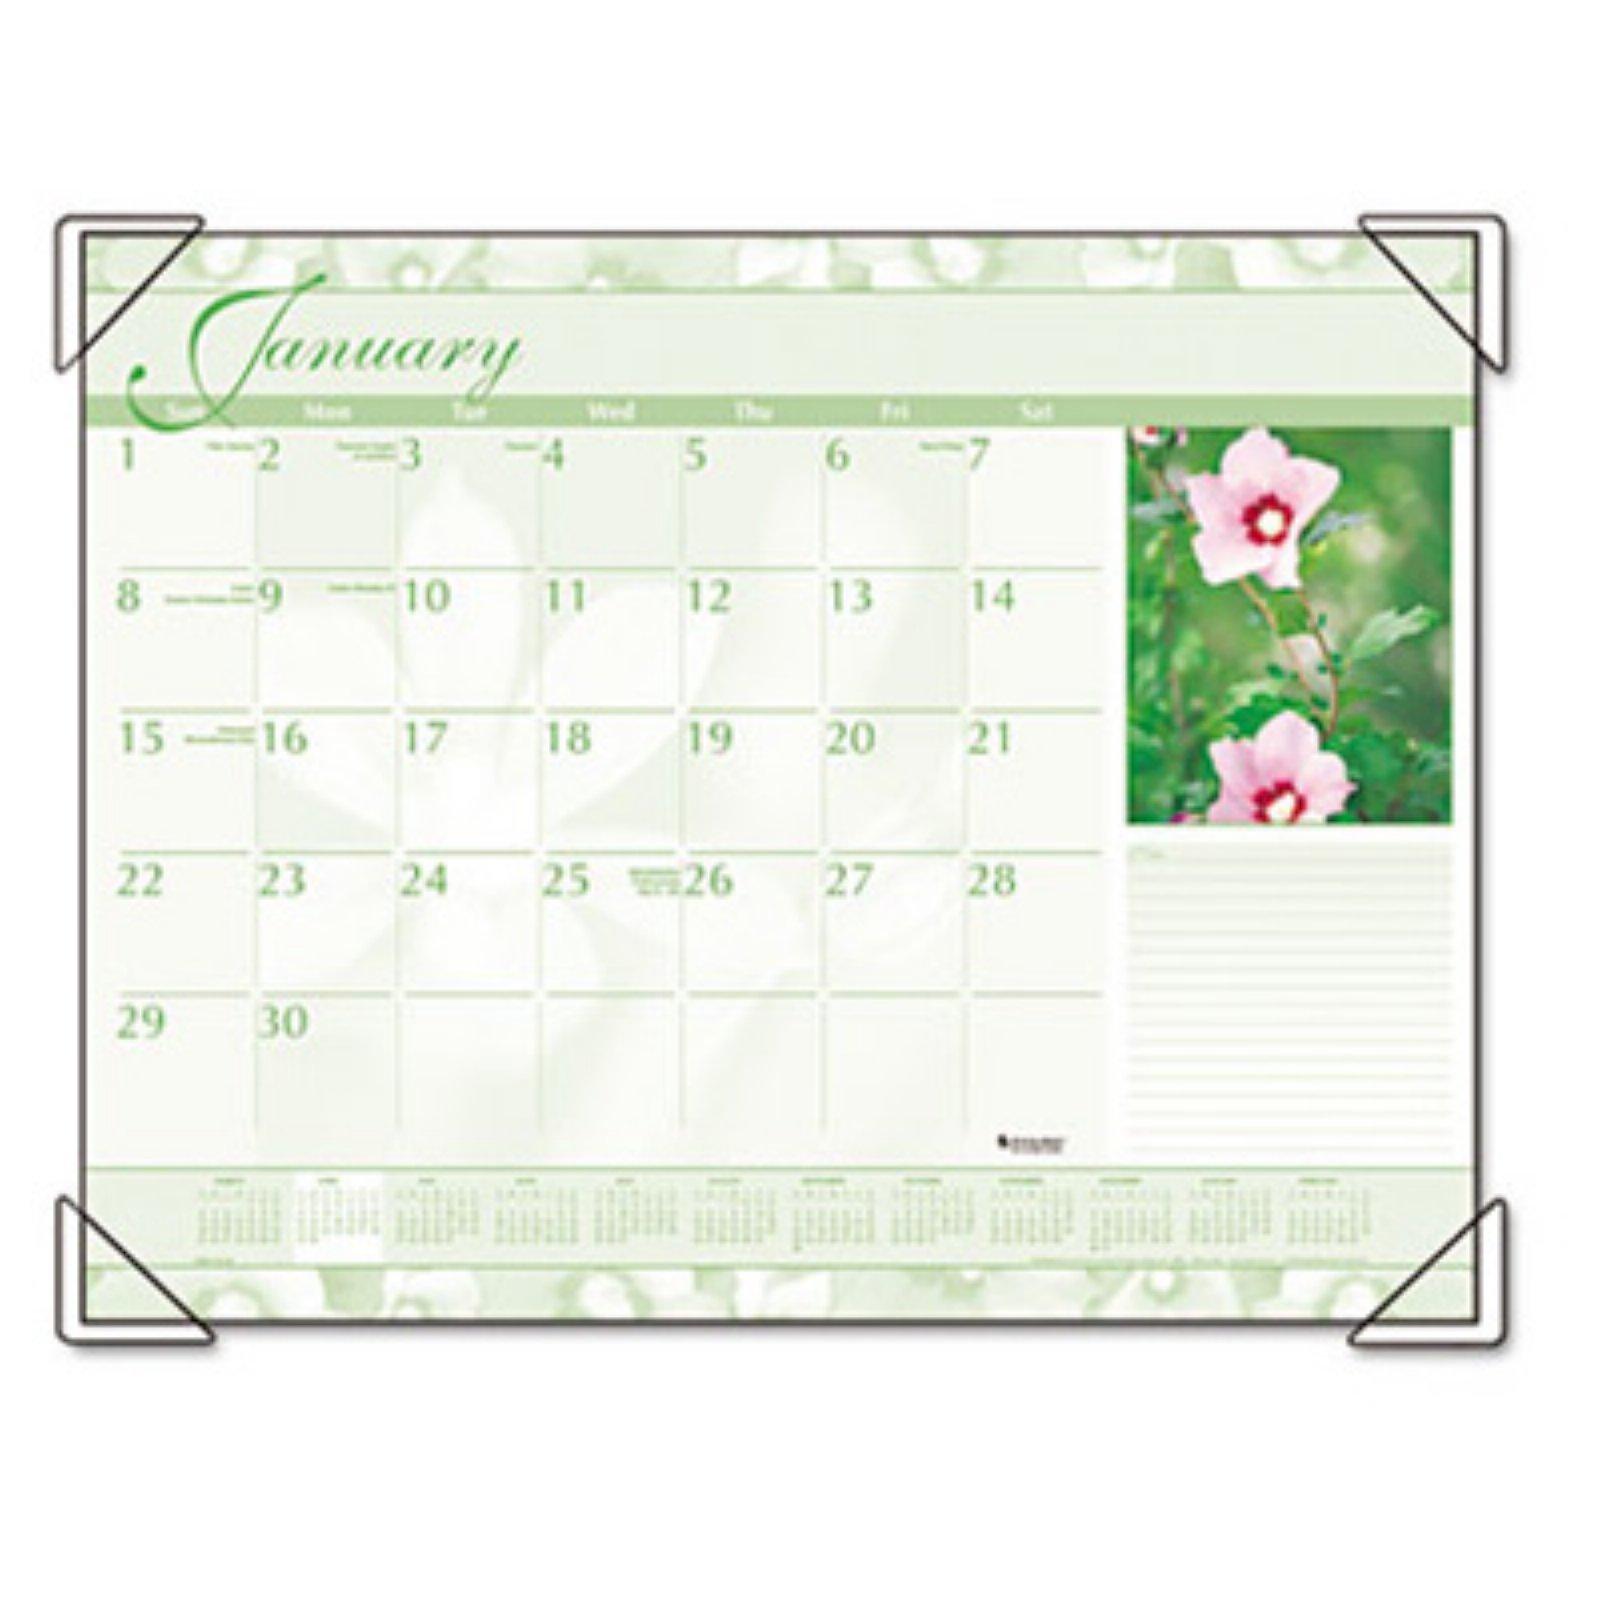 "AT-A-GLANCE Visual Organizer Recycled Antique Floral Desk Pad, 22"" x 17"" DMD13532-10"